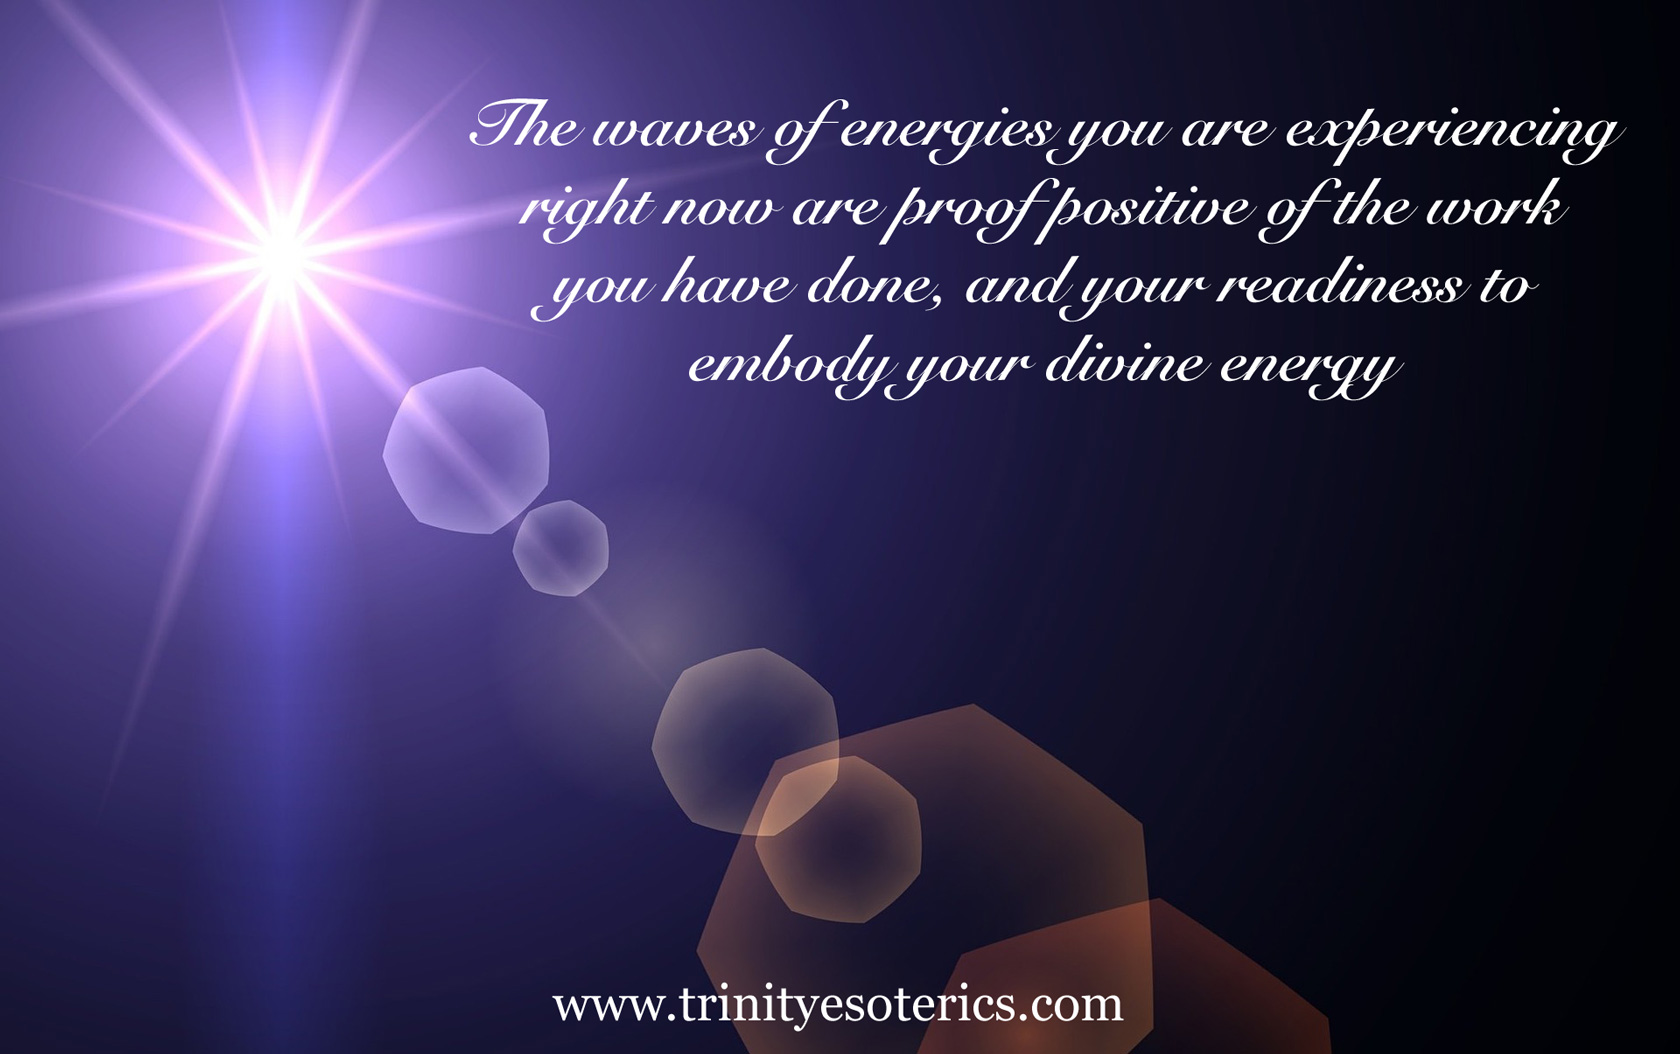 energy download trinity esoterics